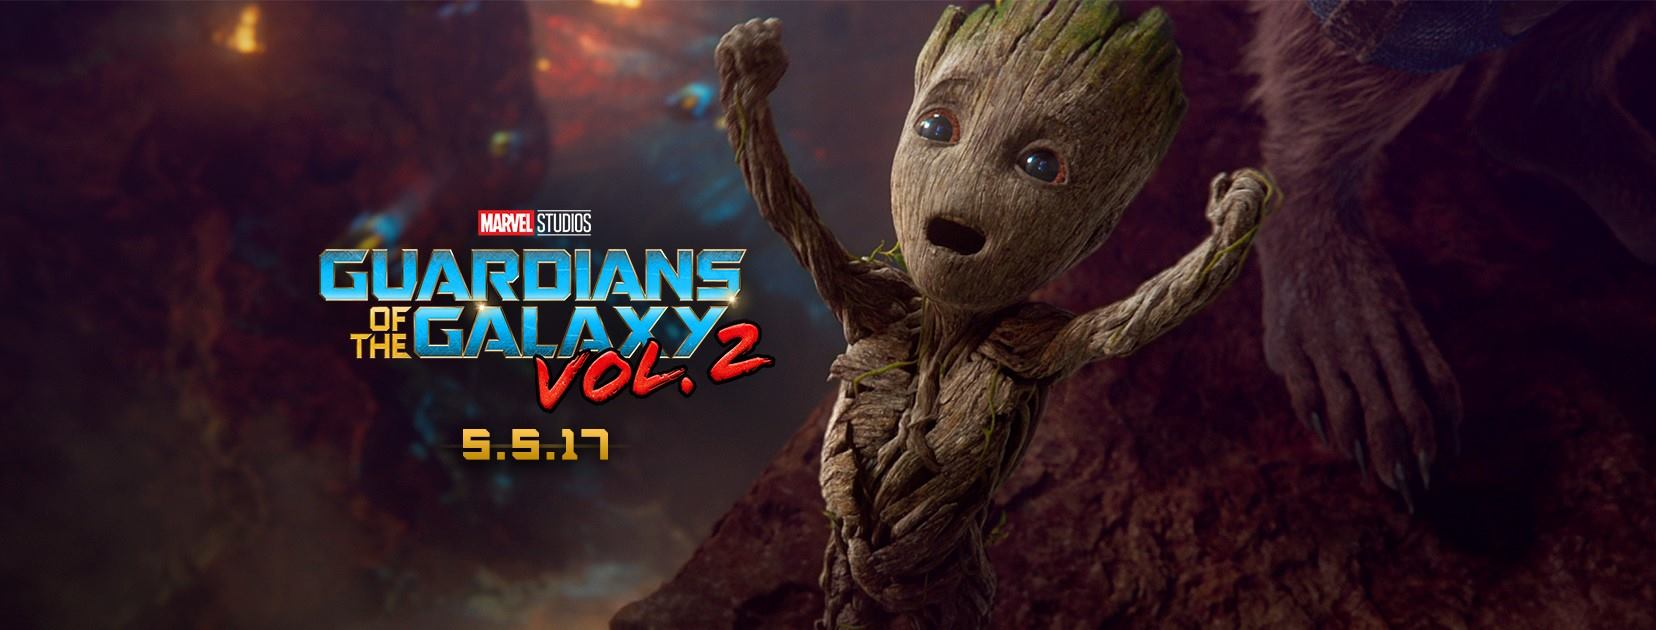 Marvel nadopunjuje svemirsku ekipu 'Guardians of the Galaxy'